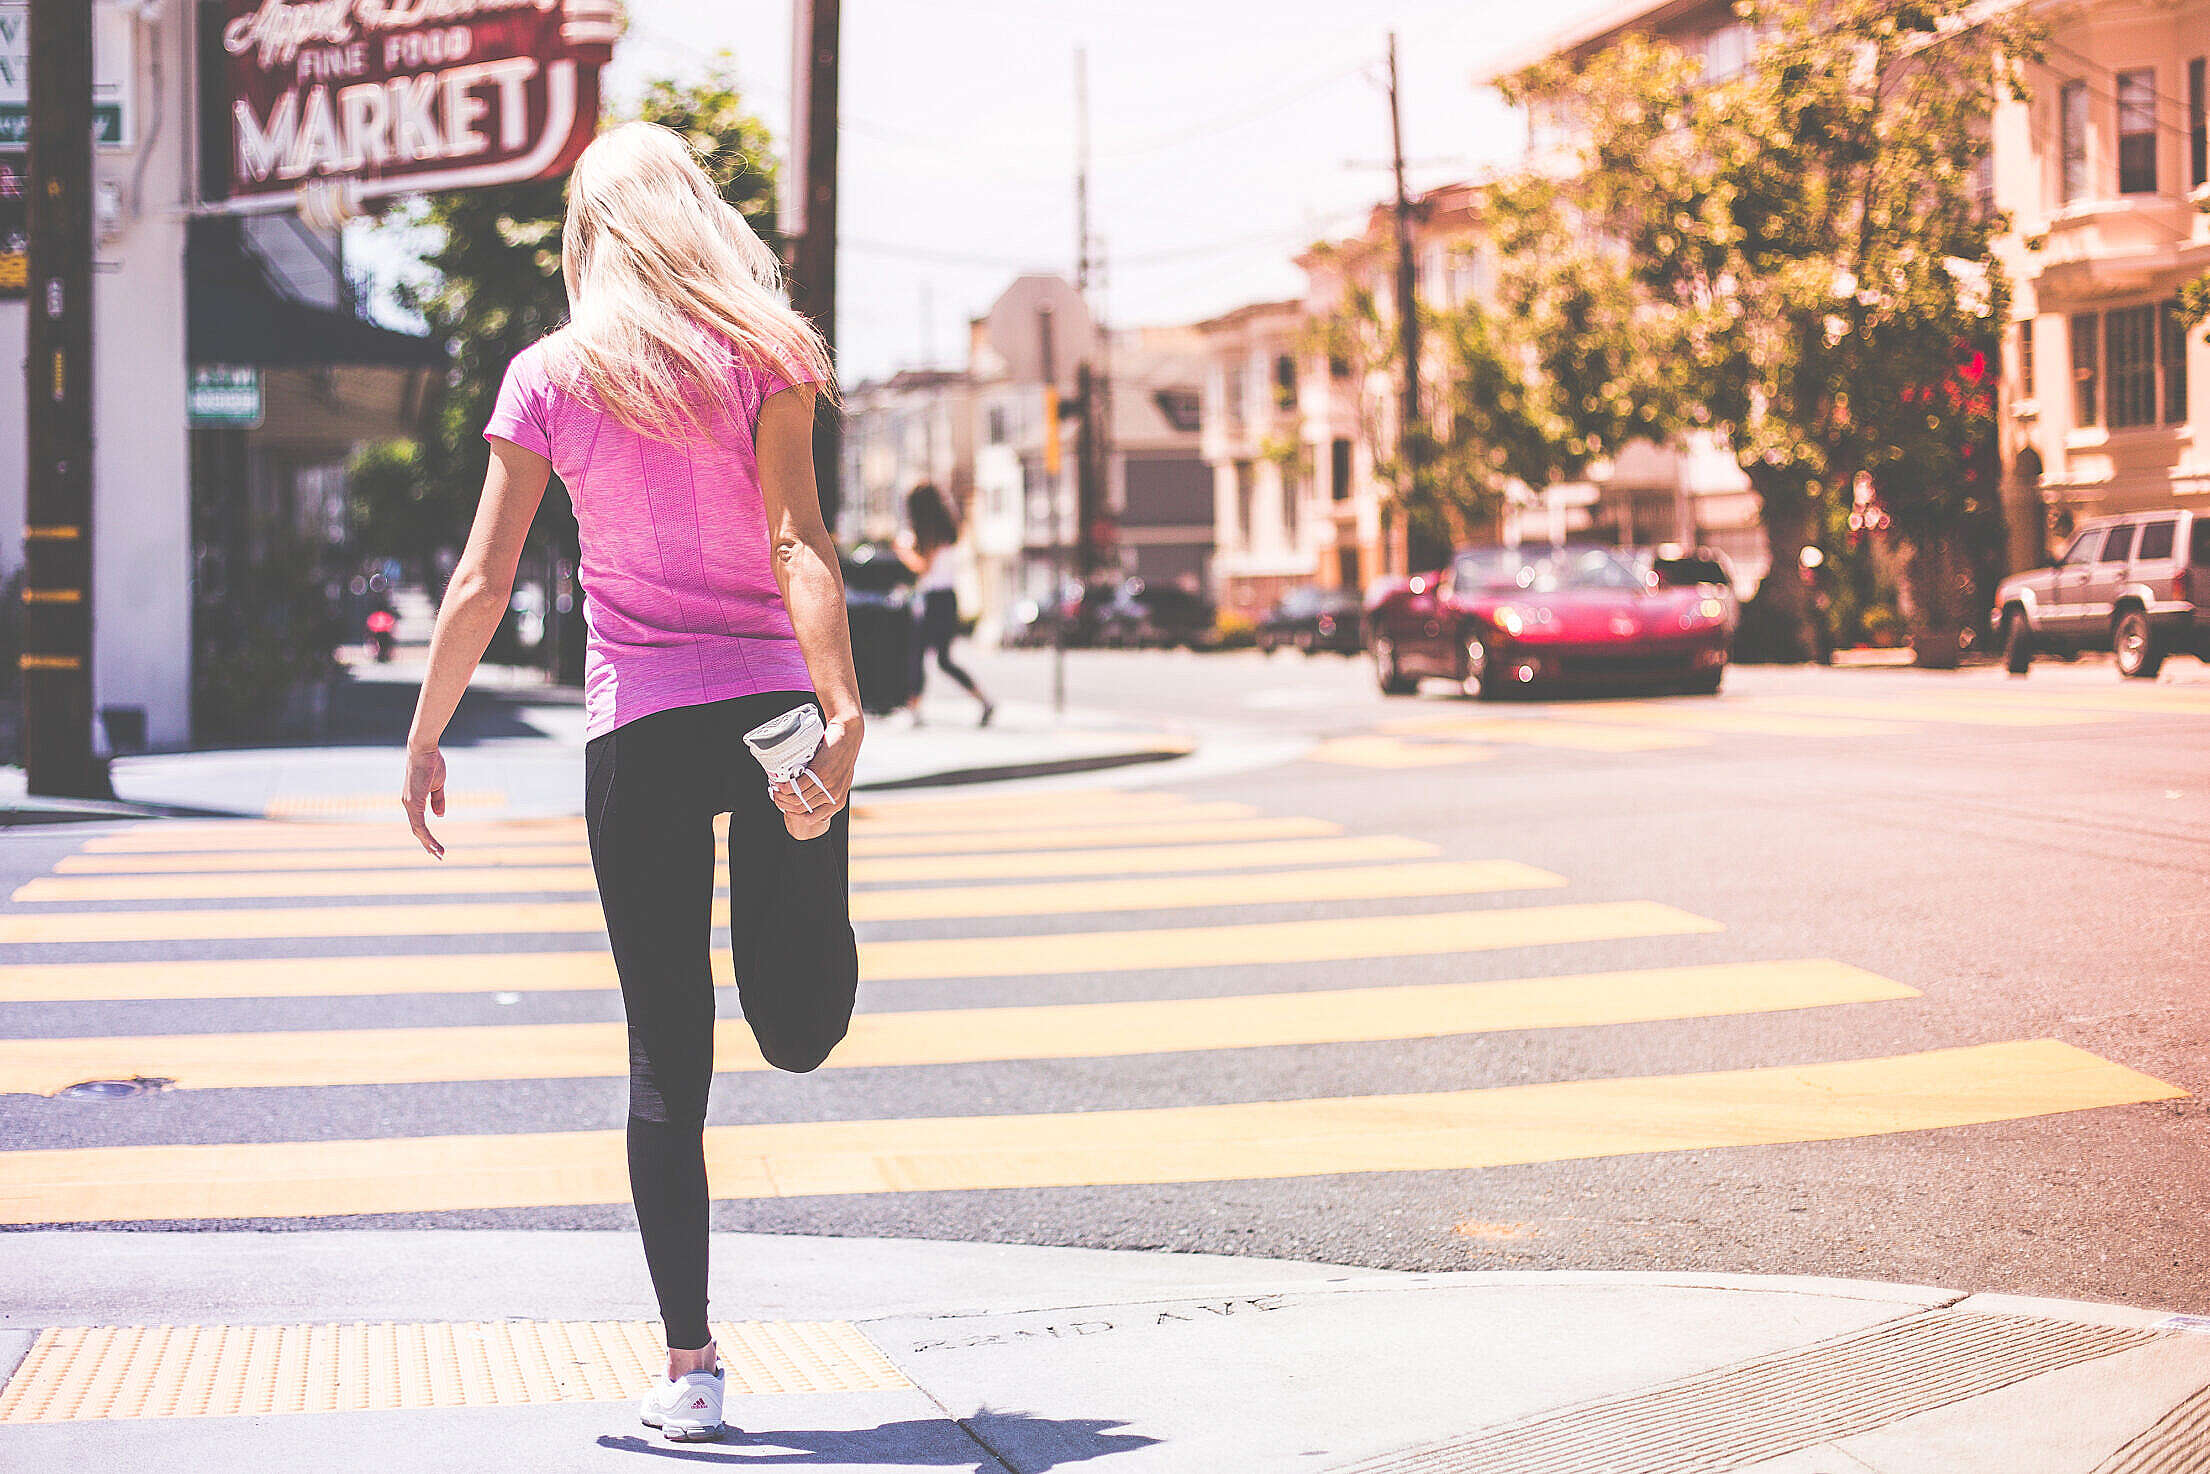 Fit Young Girl Stretching Her Legs Before Jogging Workout Free Stock Photo